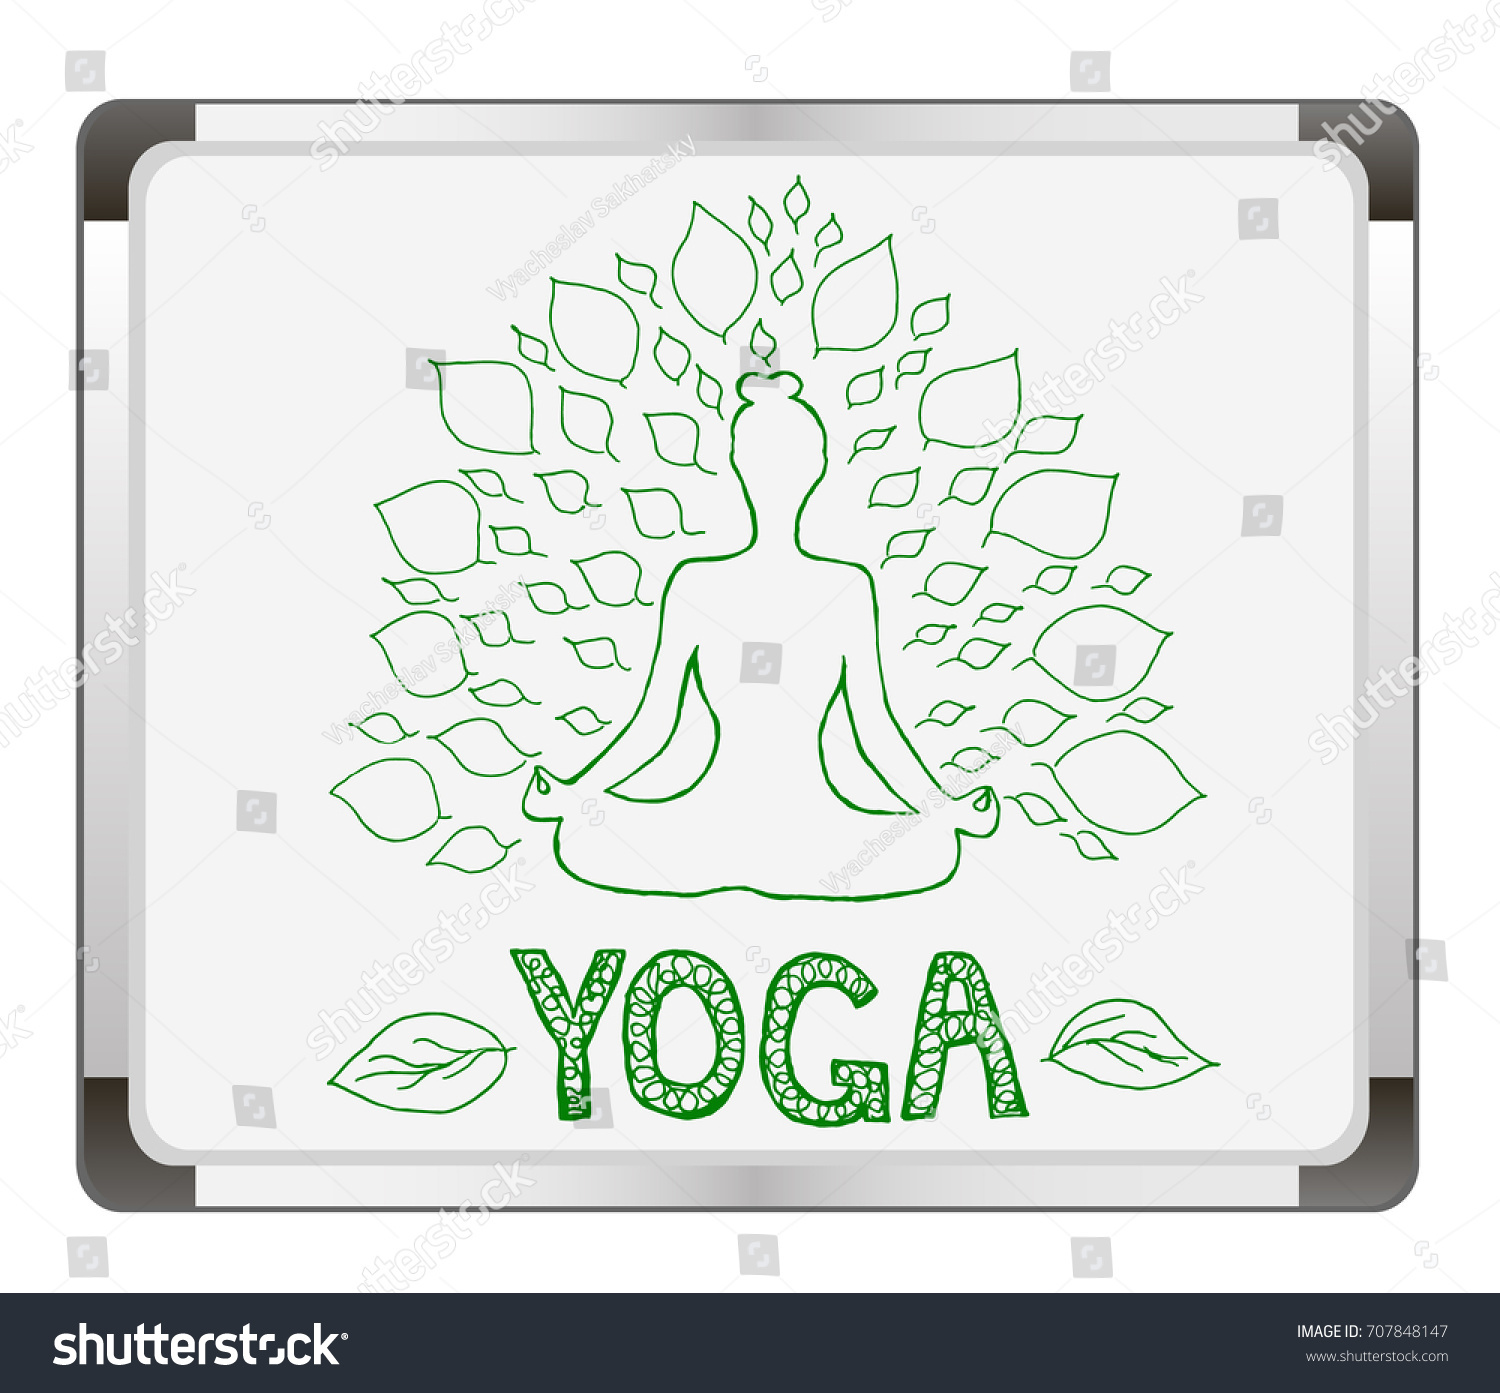 Girl With Leaves On Flip Chart Background Silhouette Of Yoga Woman Lotus Pose